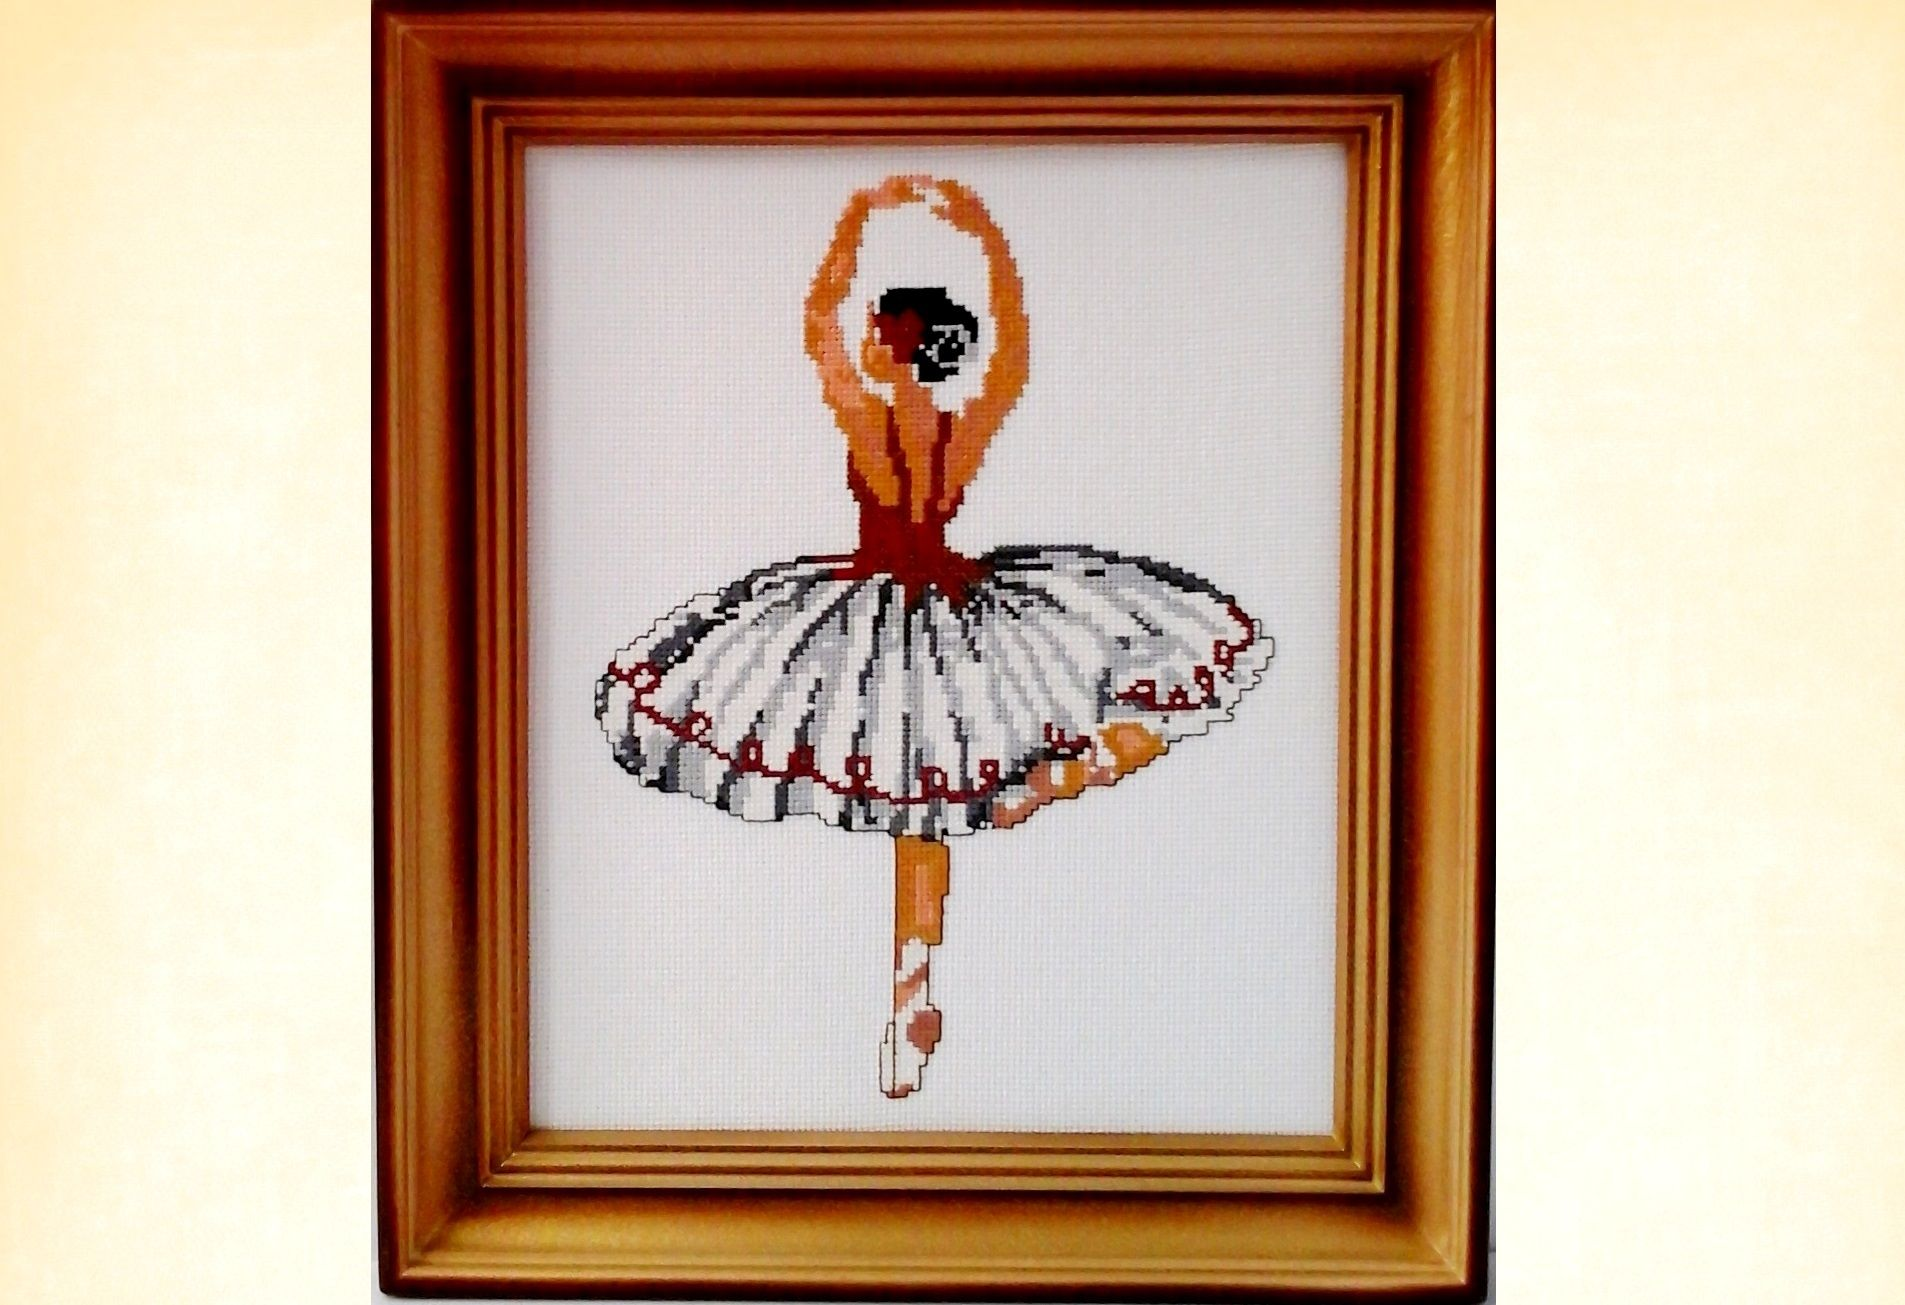 Finished framed cross stitch picture Ballerina will become a ...